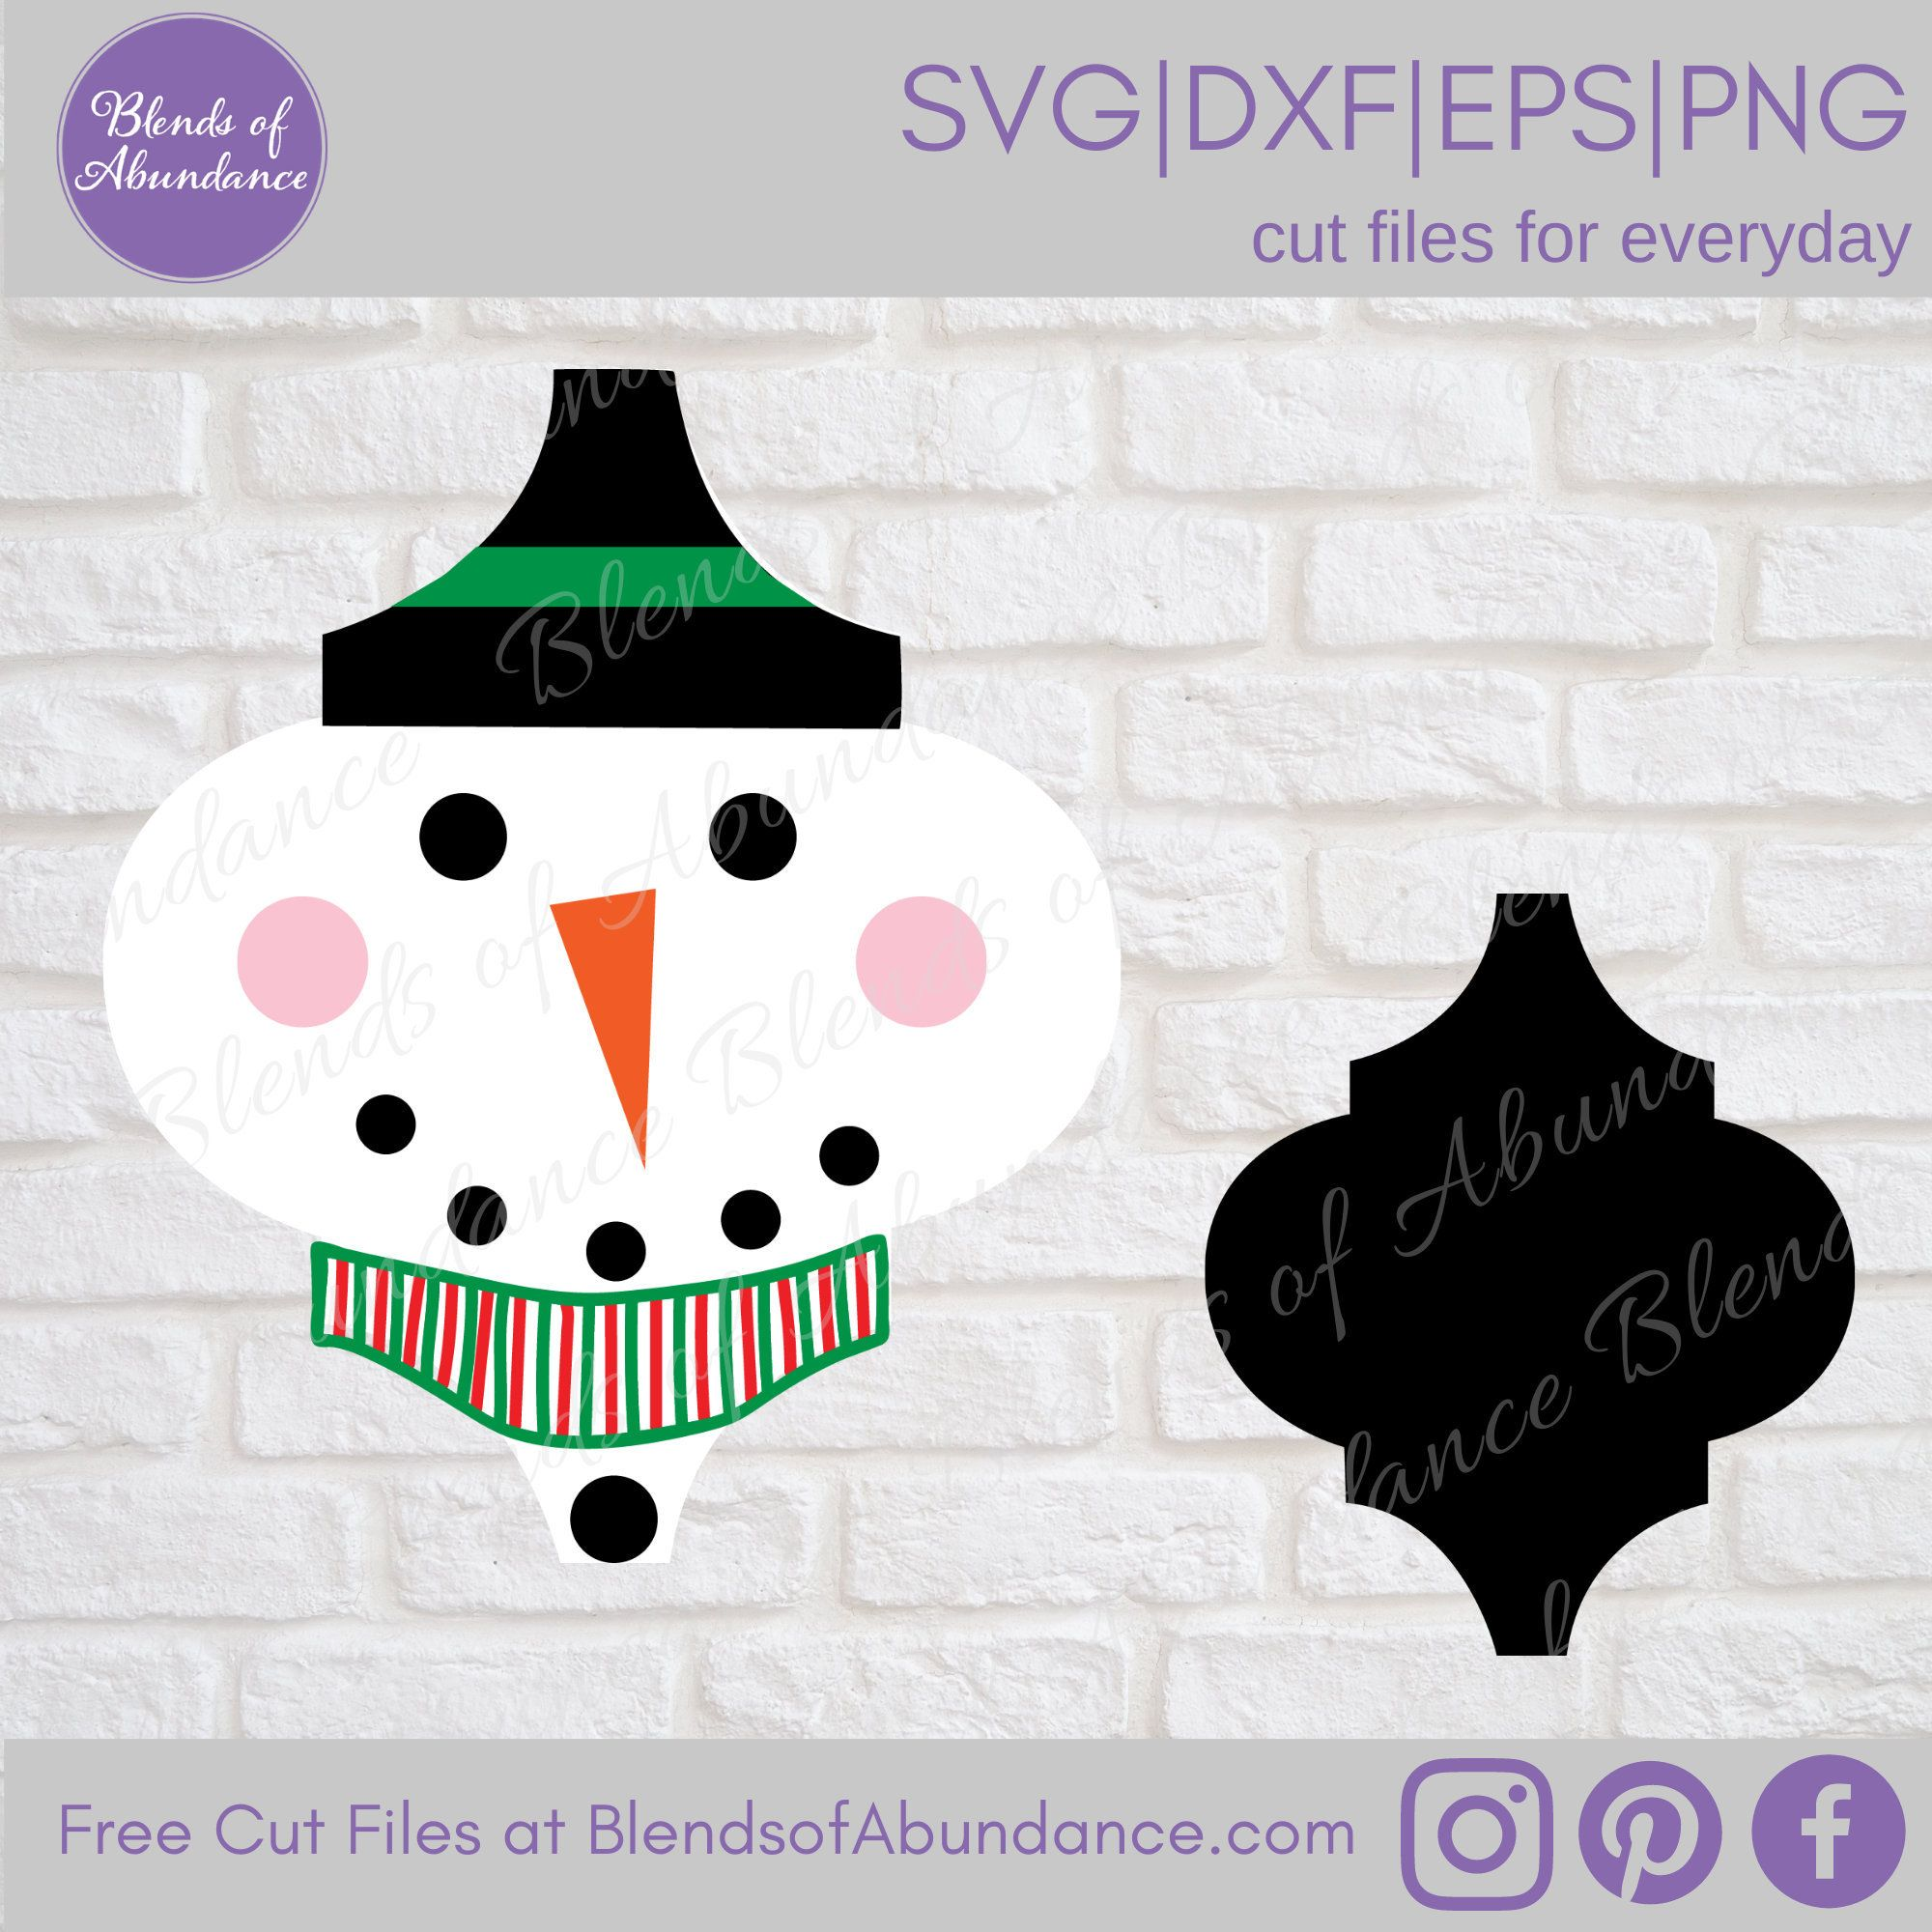 Snowman Ornament Svg Tile Ornament Svg Tile Ornament Etsy In 2021 Ornament Template Arabesque Tile Christmas Ornaments